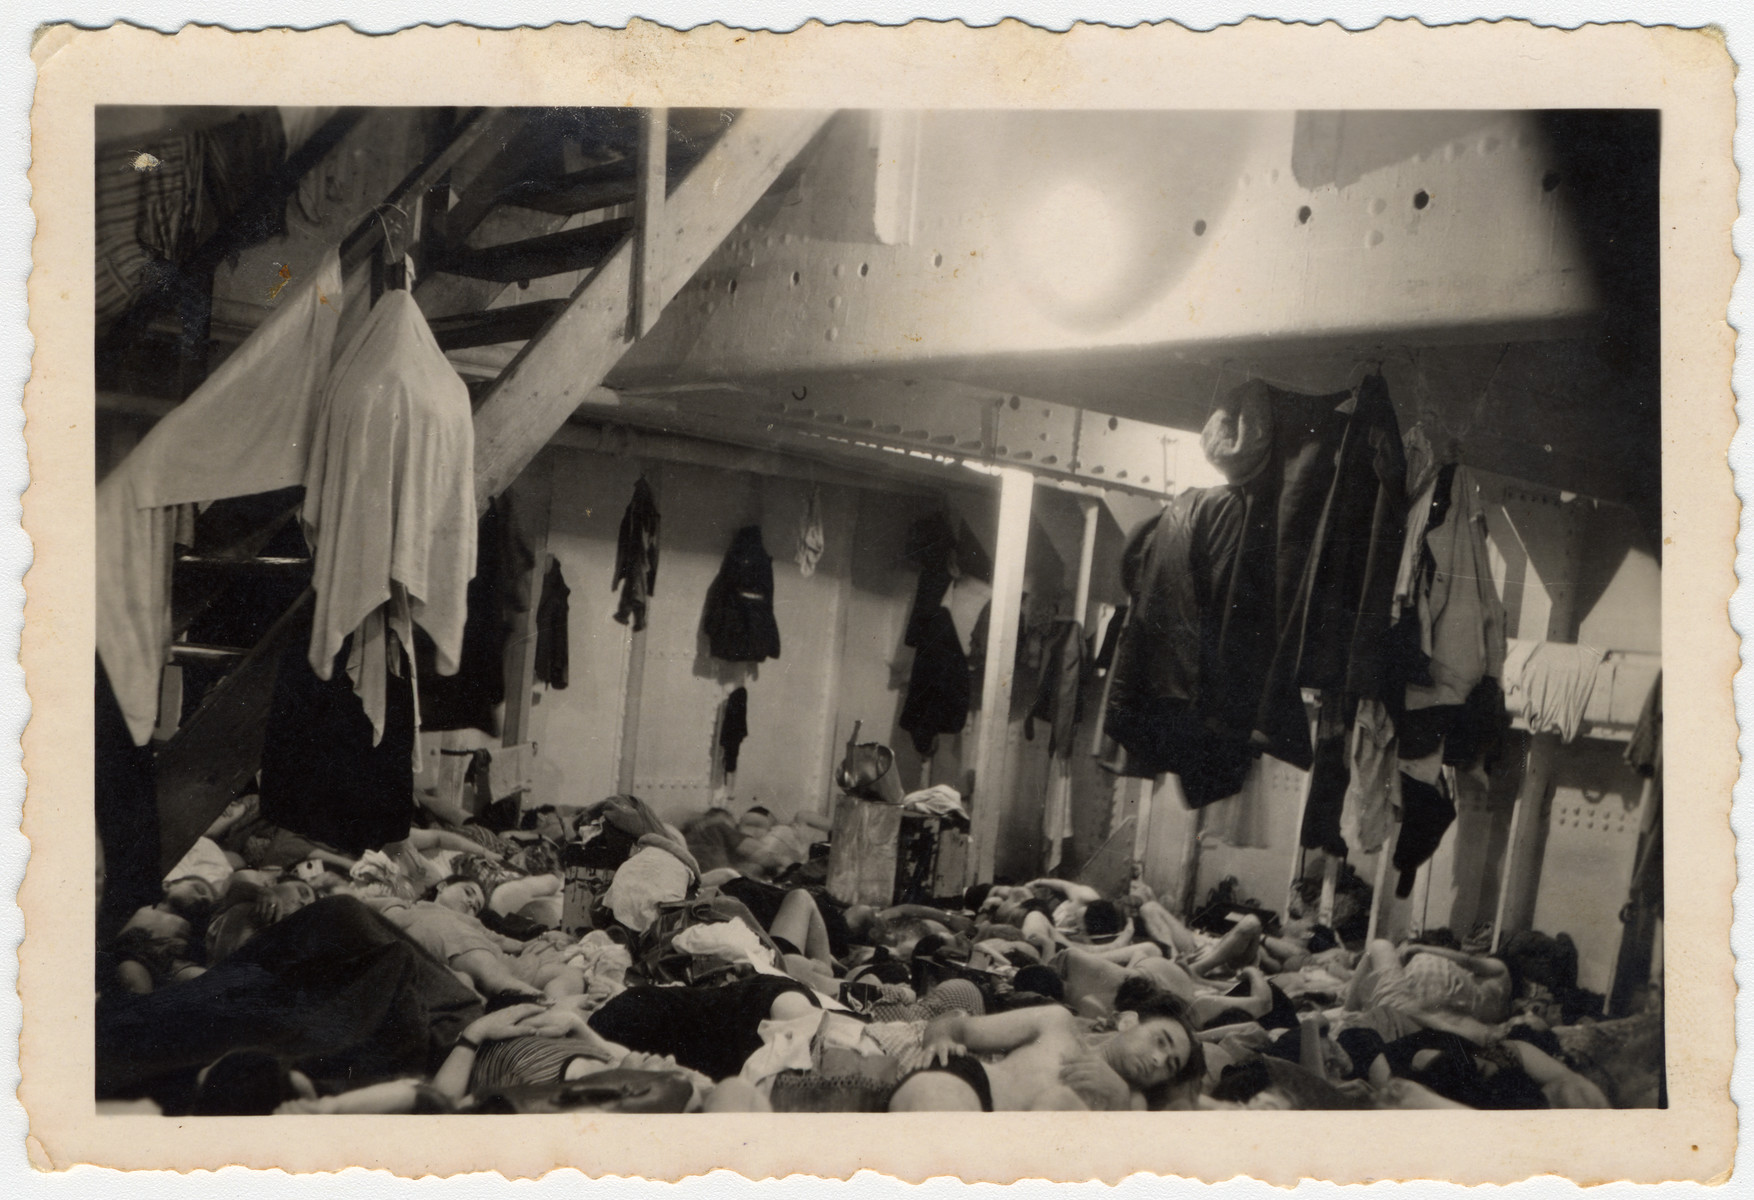 Jewish refugees crowd together in the sleeping quarters aboard the Exodus 1947.